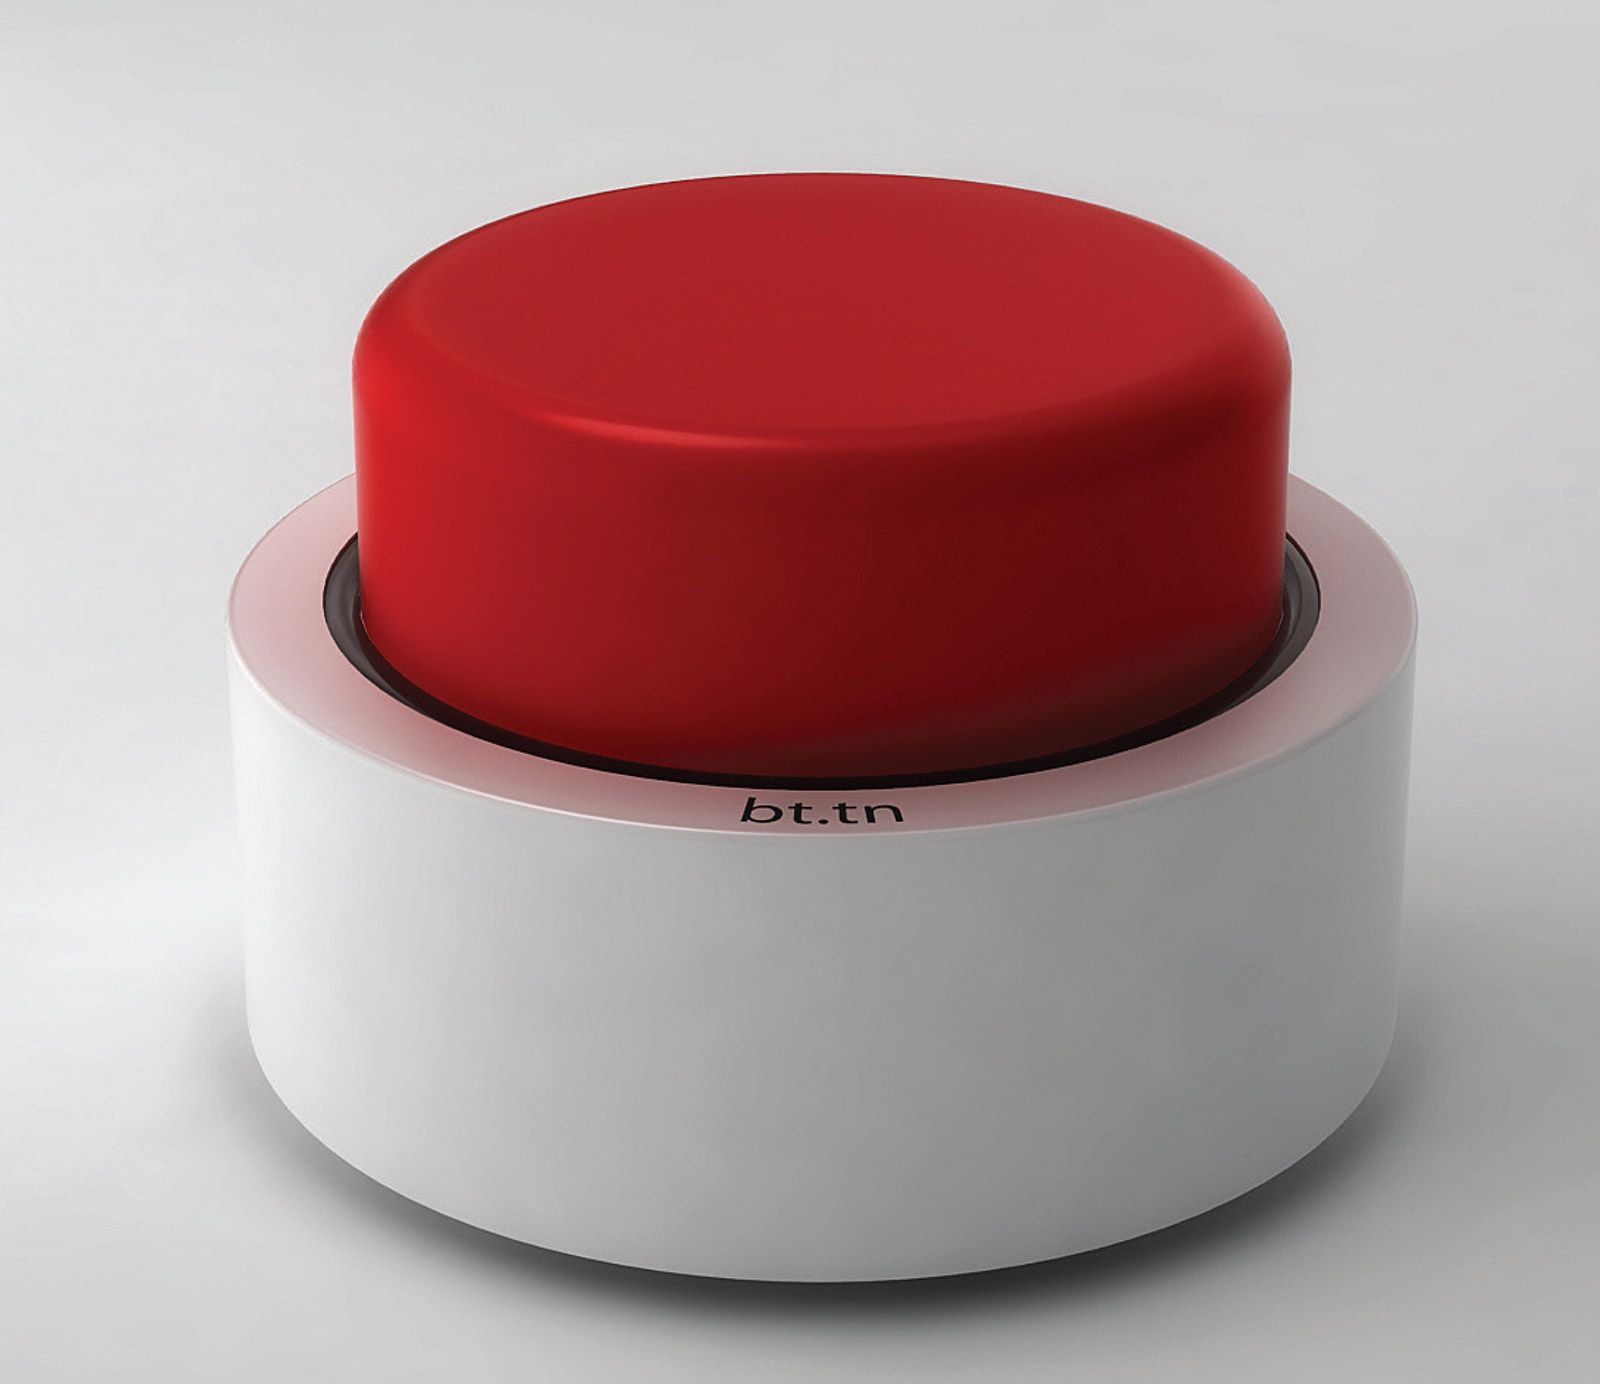 The Internet of Things Simplified Into One Red bttn